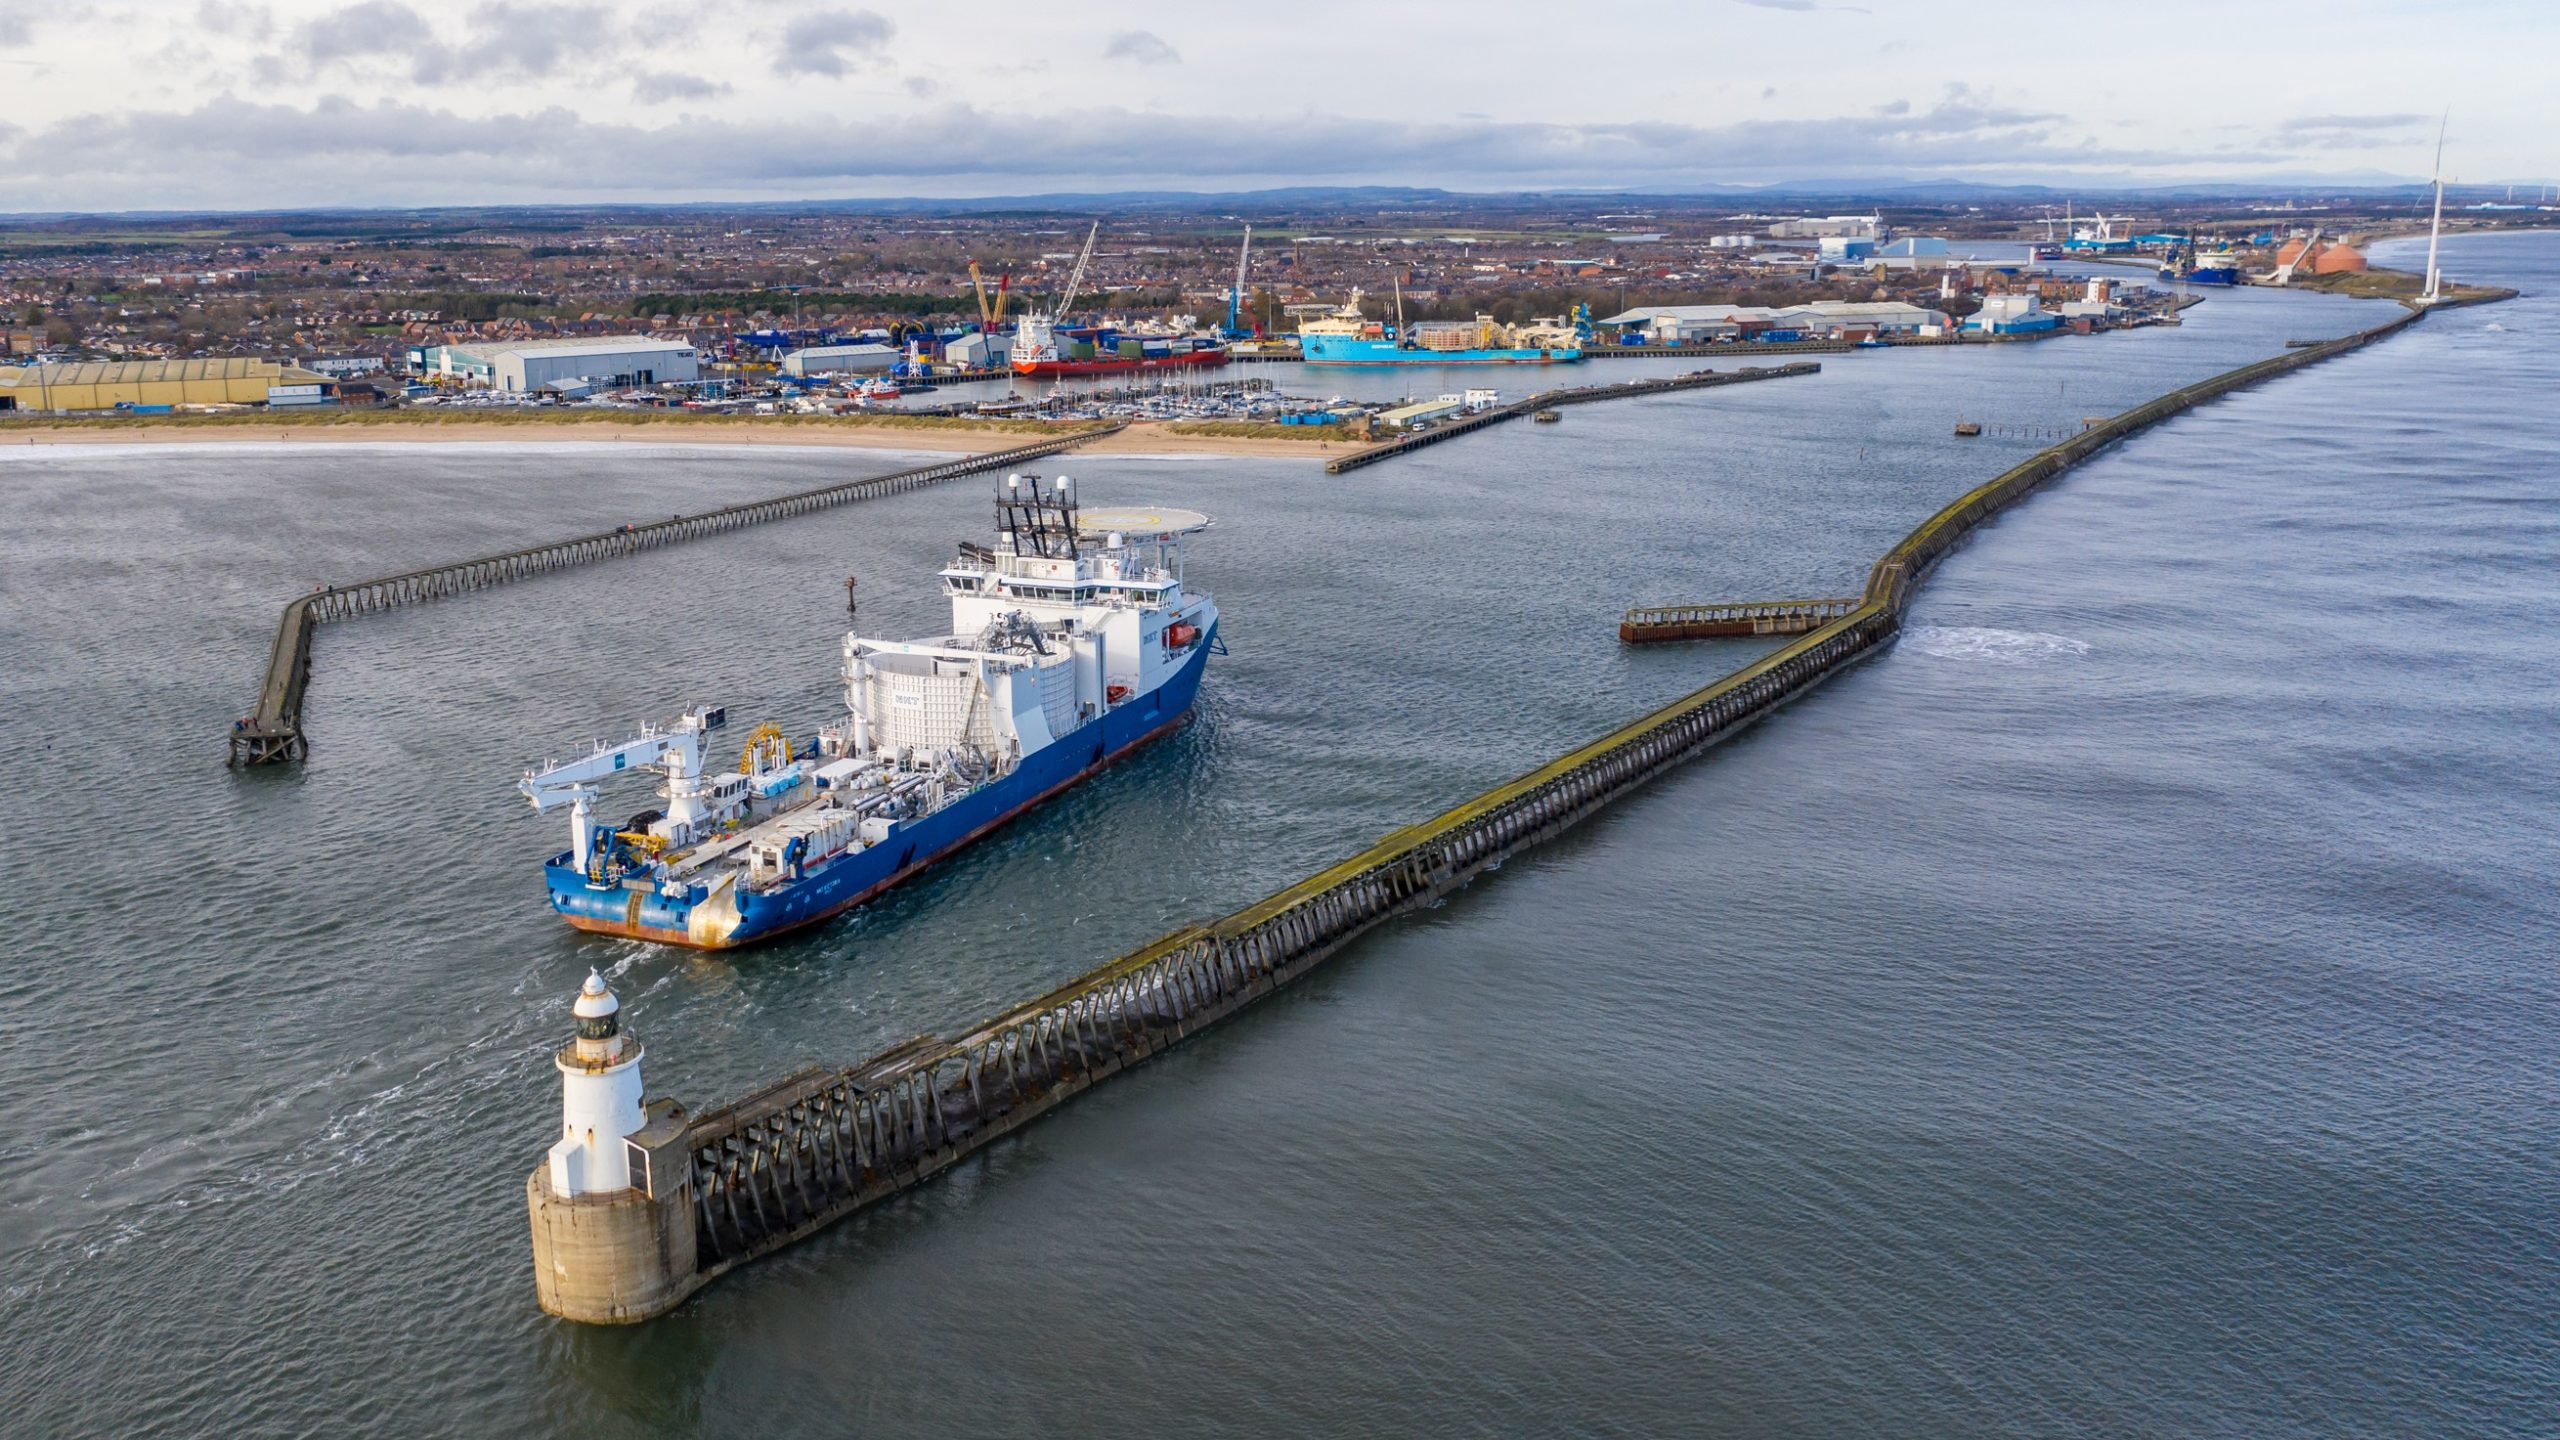 Investment and Expansion at Port of Blyth